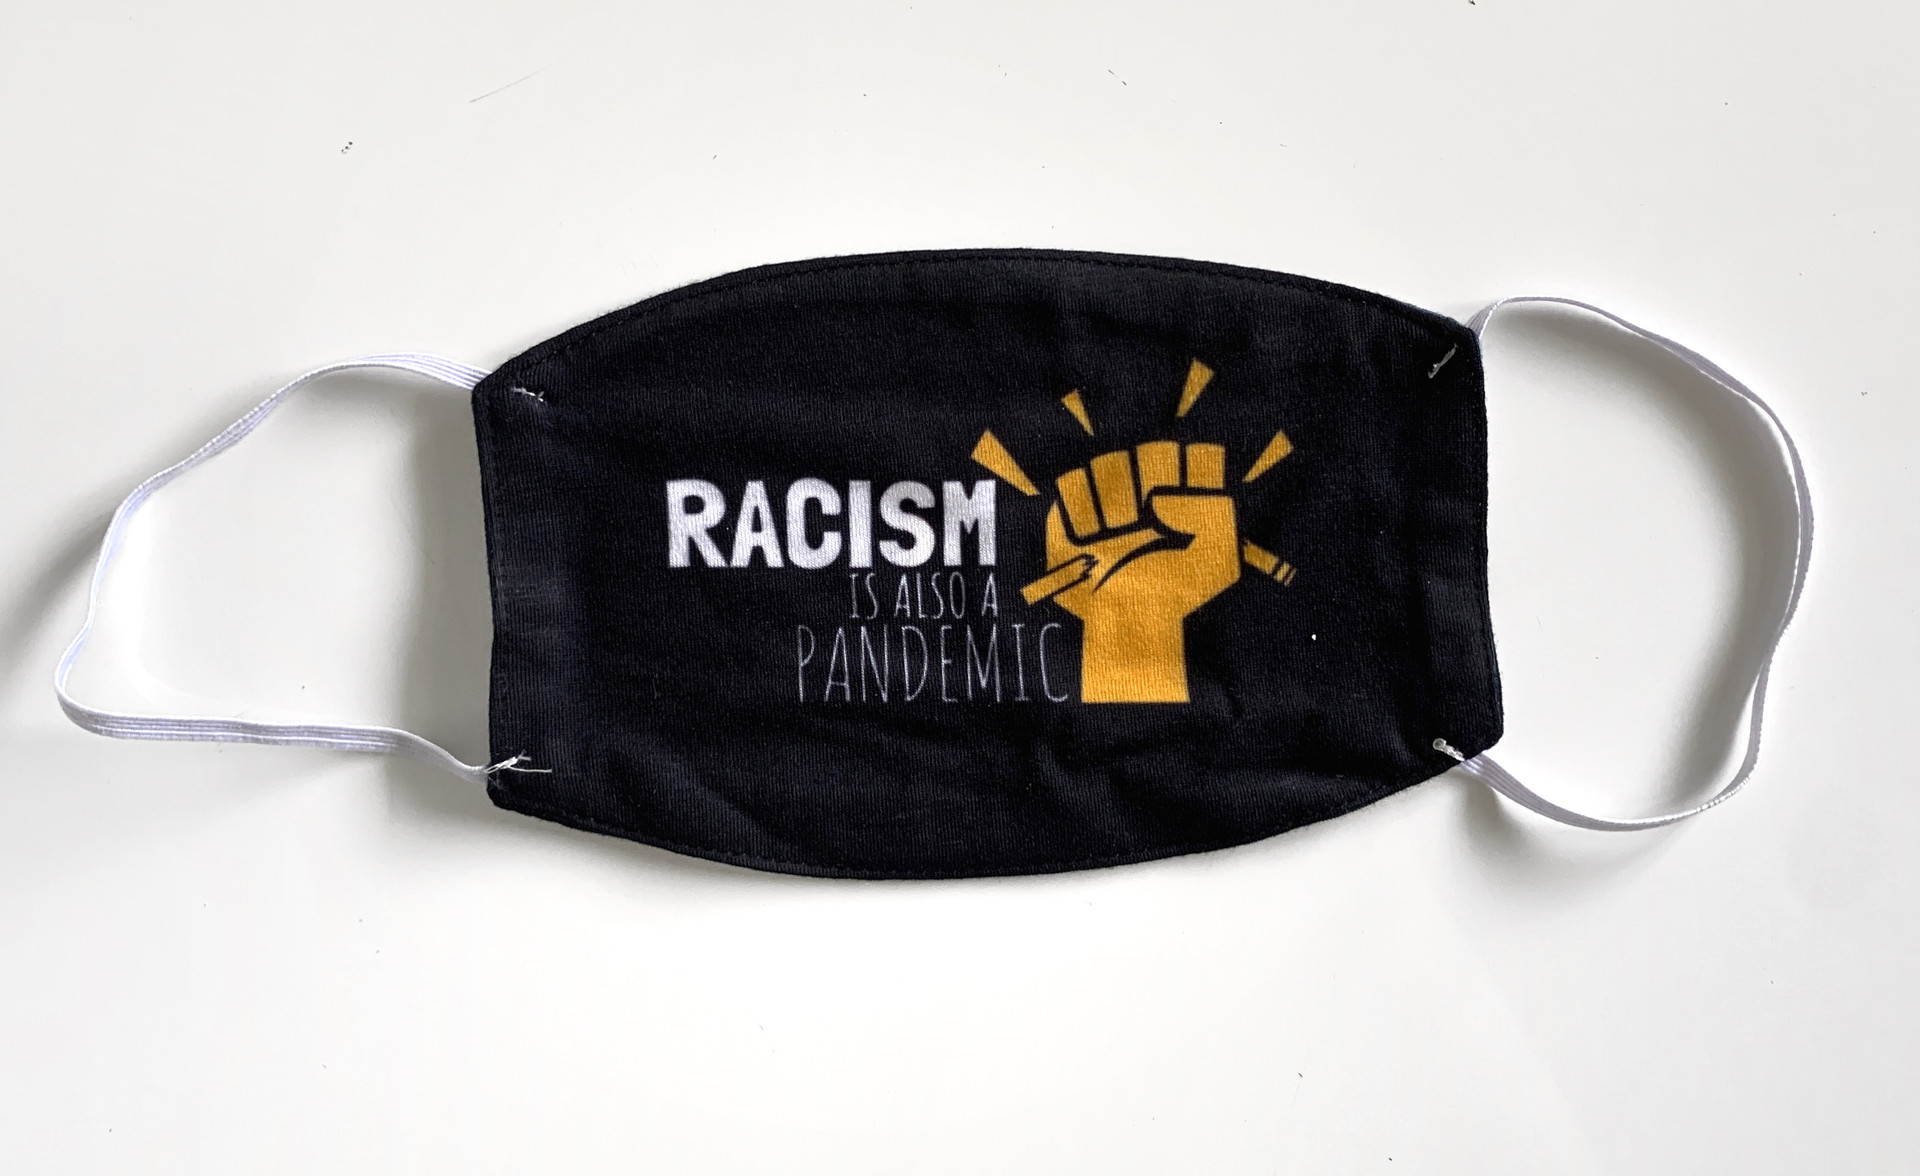 Racism is Also a Pandemic